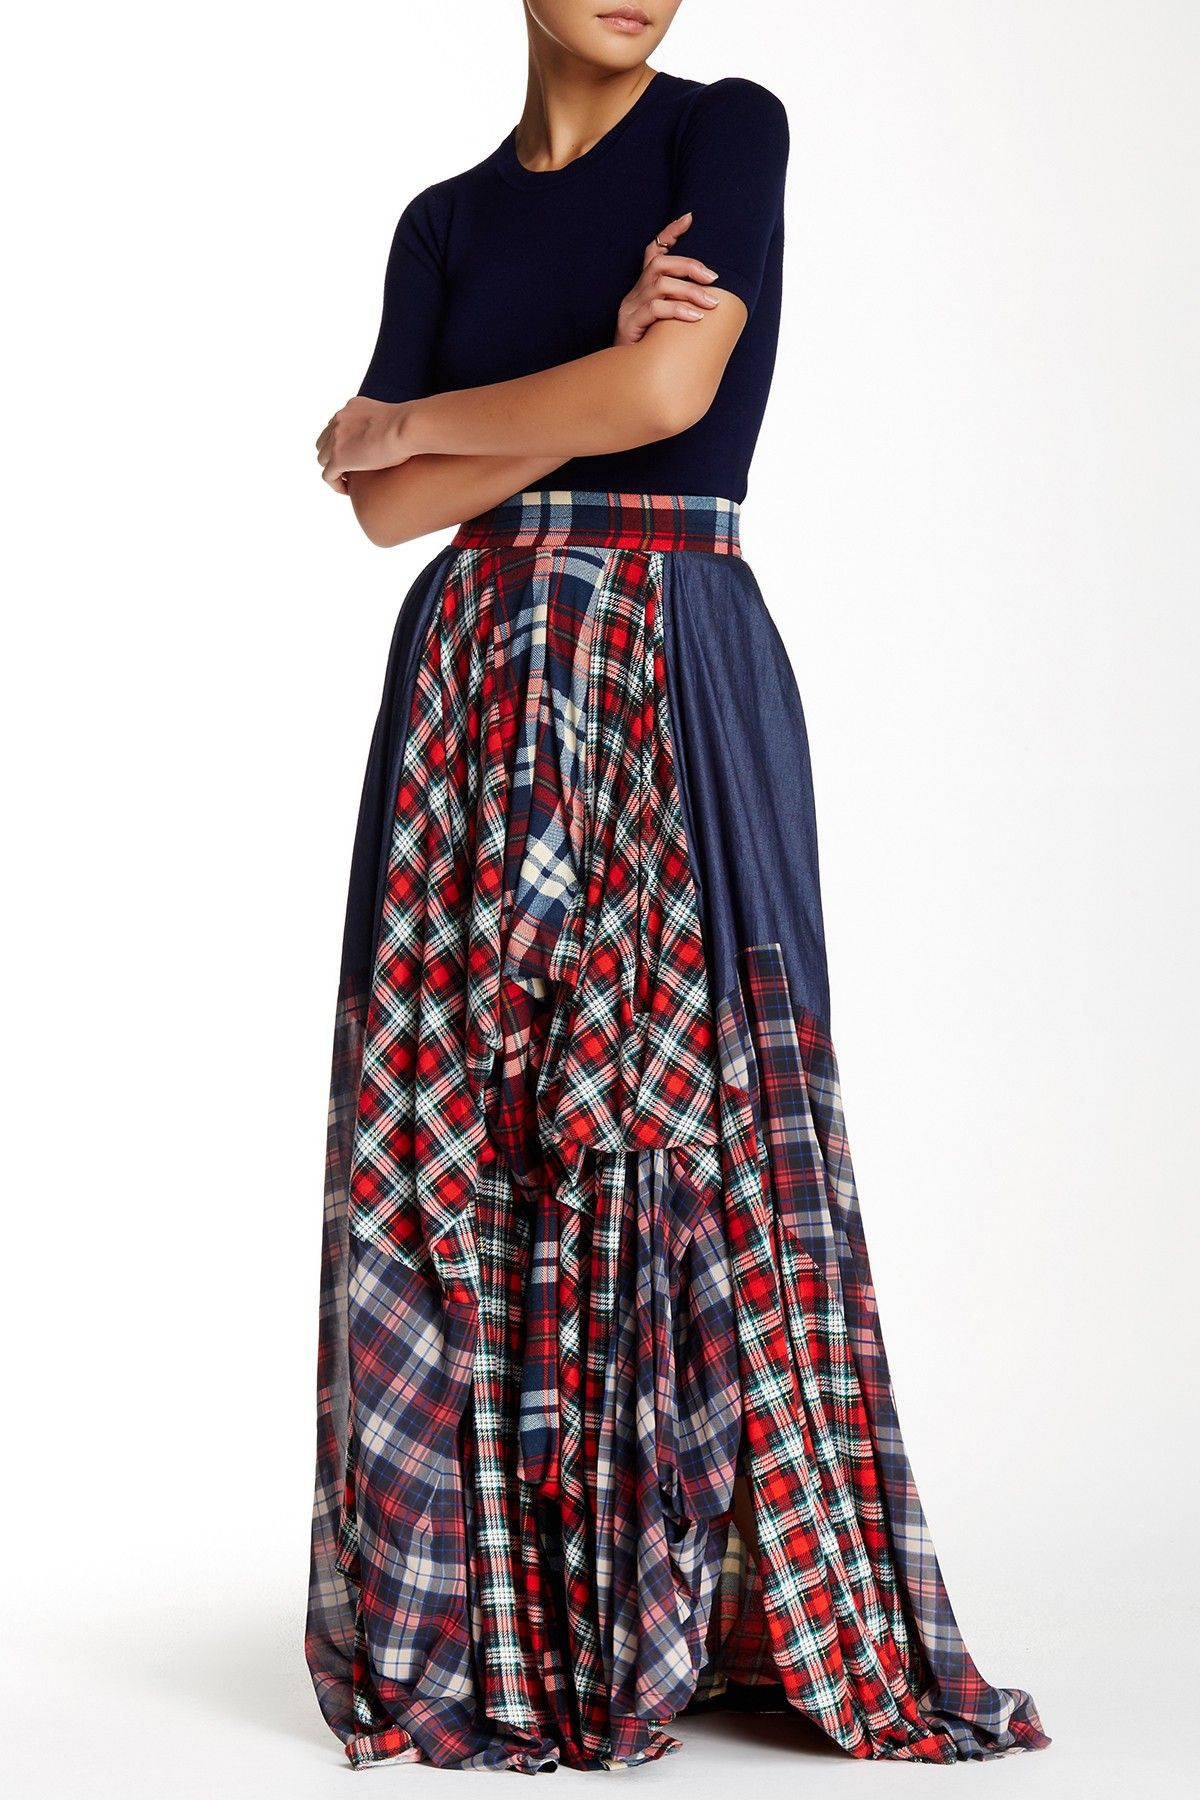 Womens Dresses Gown Casual Plaid Print Long Sleeve Holiday Empire Waist Full Length Maxi Skirt with Pockets